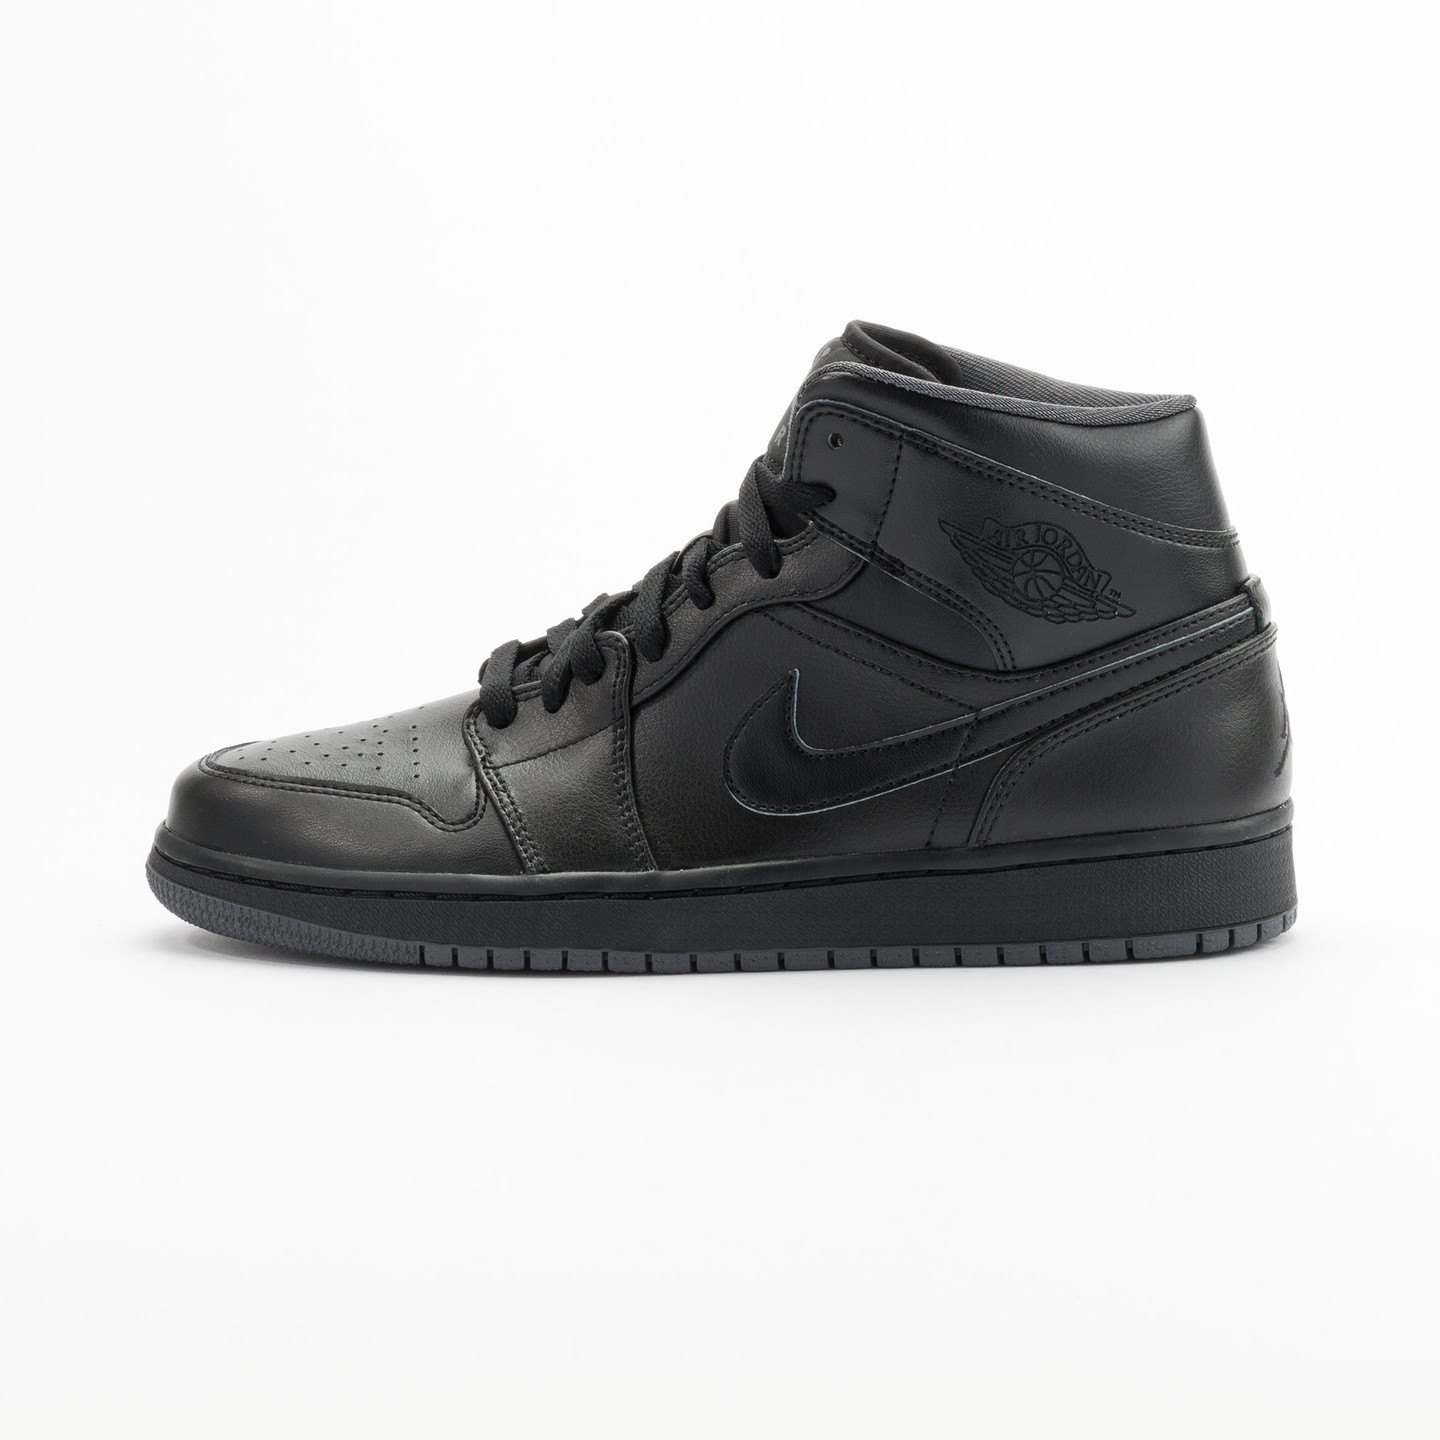 Nike Air Jordan 1 Mid Black / Dark Grey 554724-021-46